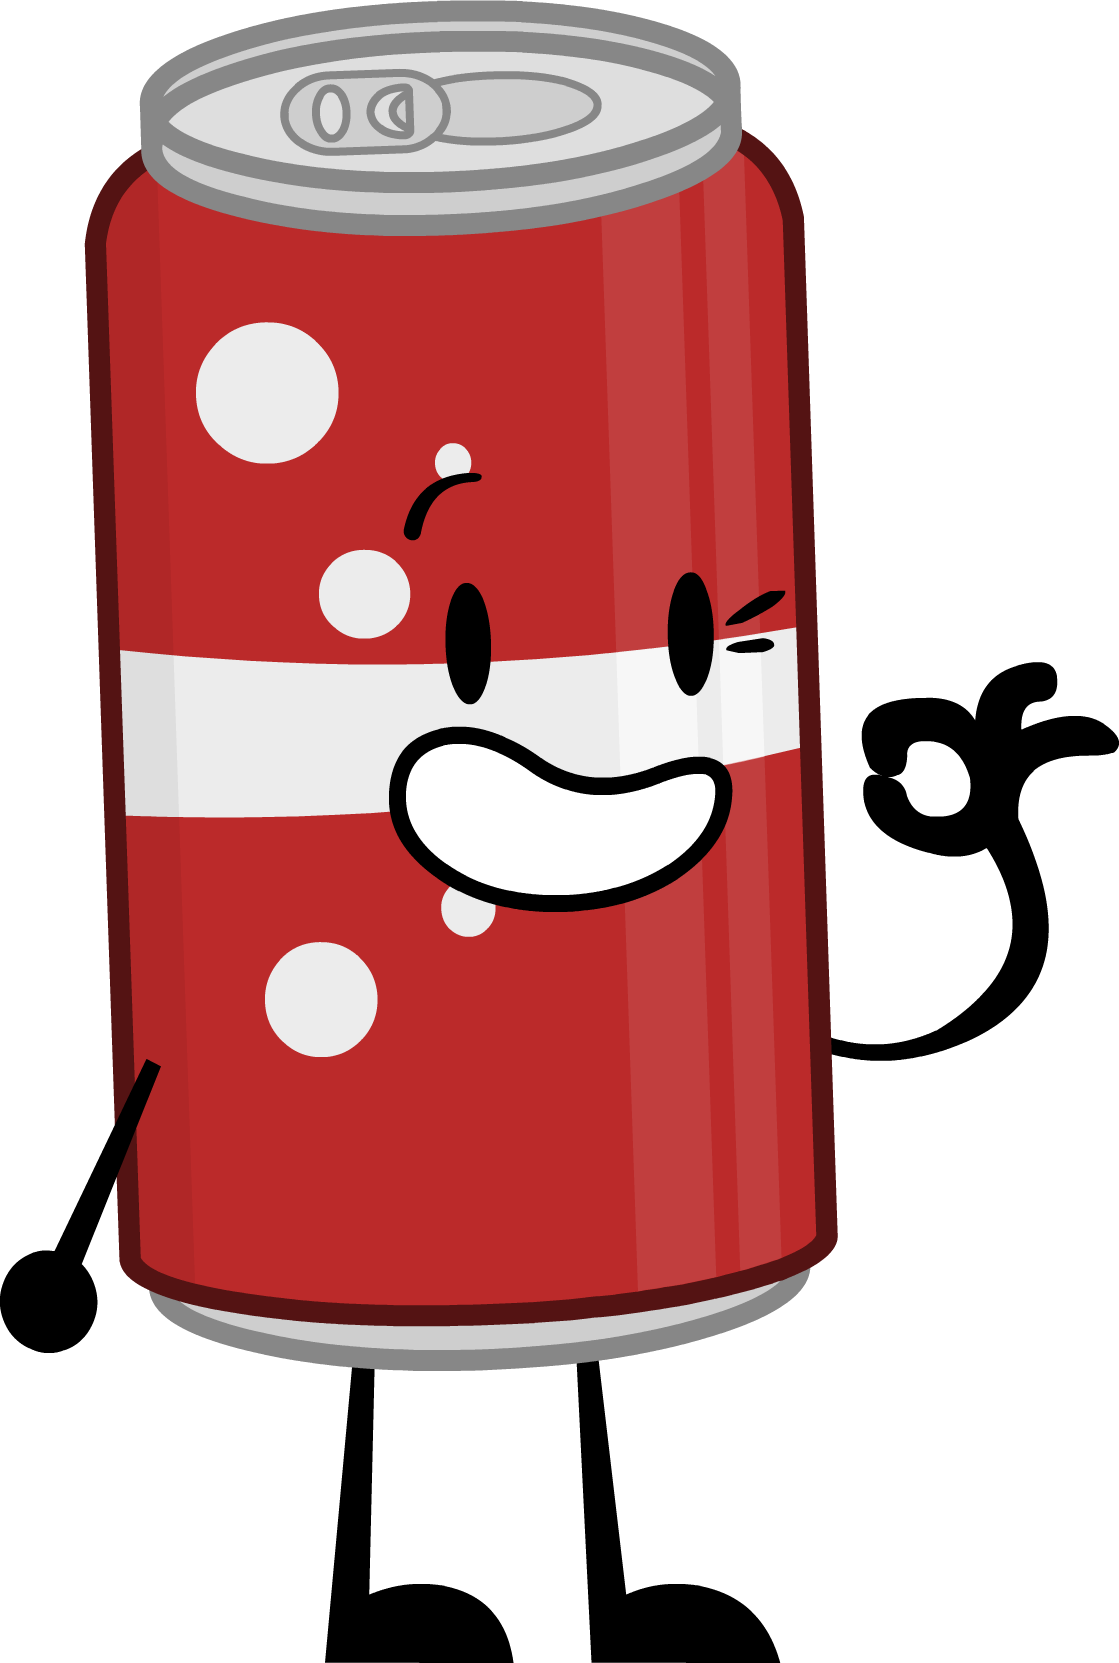 Soda png. Can cool insanity wiki